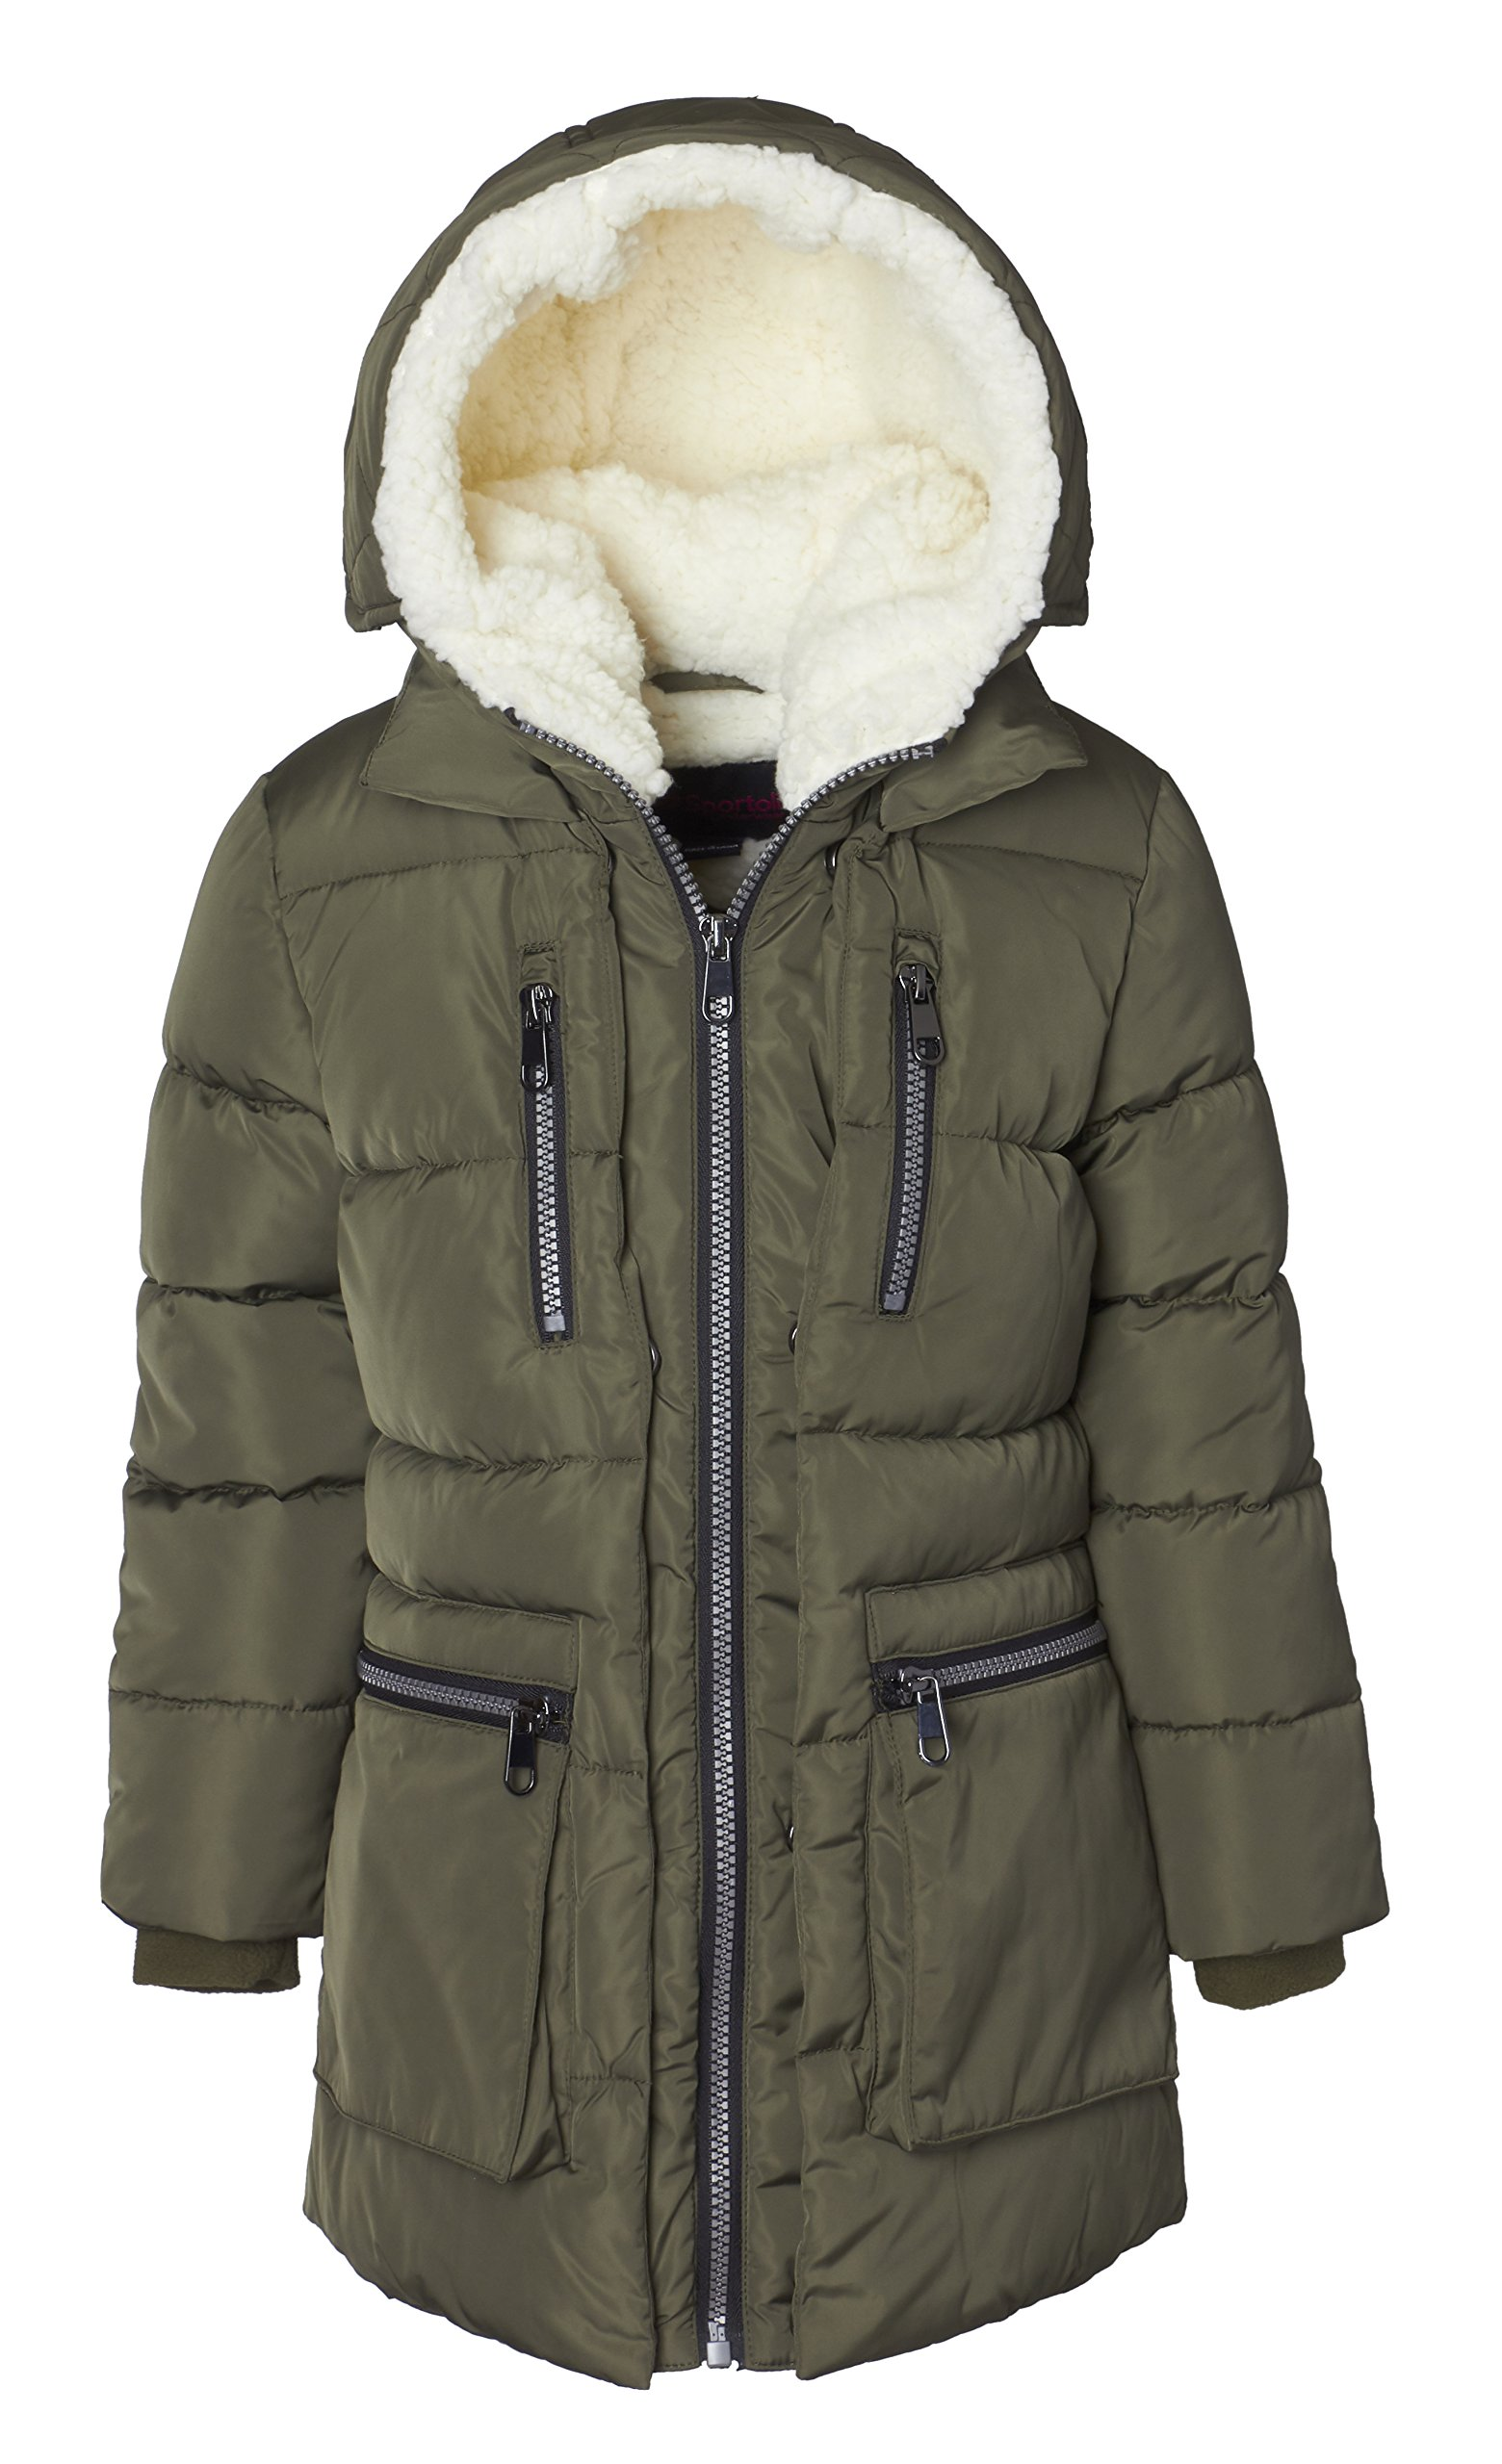 Sportoli Girls' Fleece Lined Heavy Quilted Fashion Detailed Jacket Coat with Attached Sherpa Lined Hood - Olive 7/8